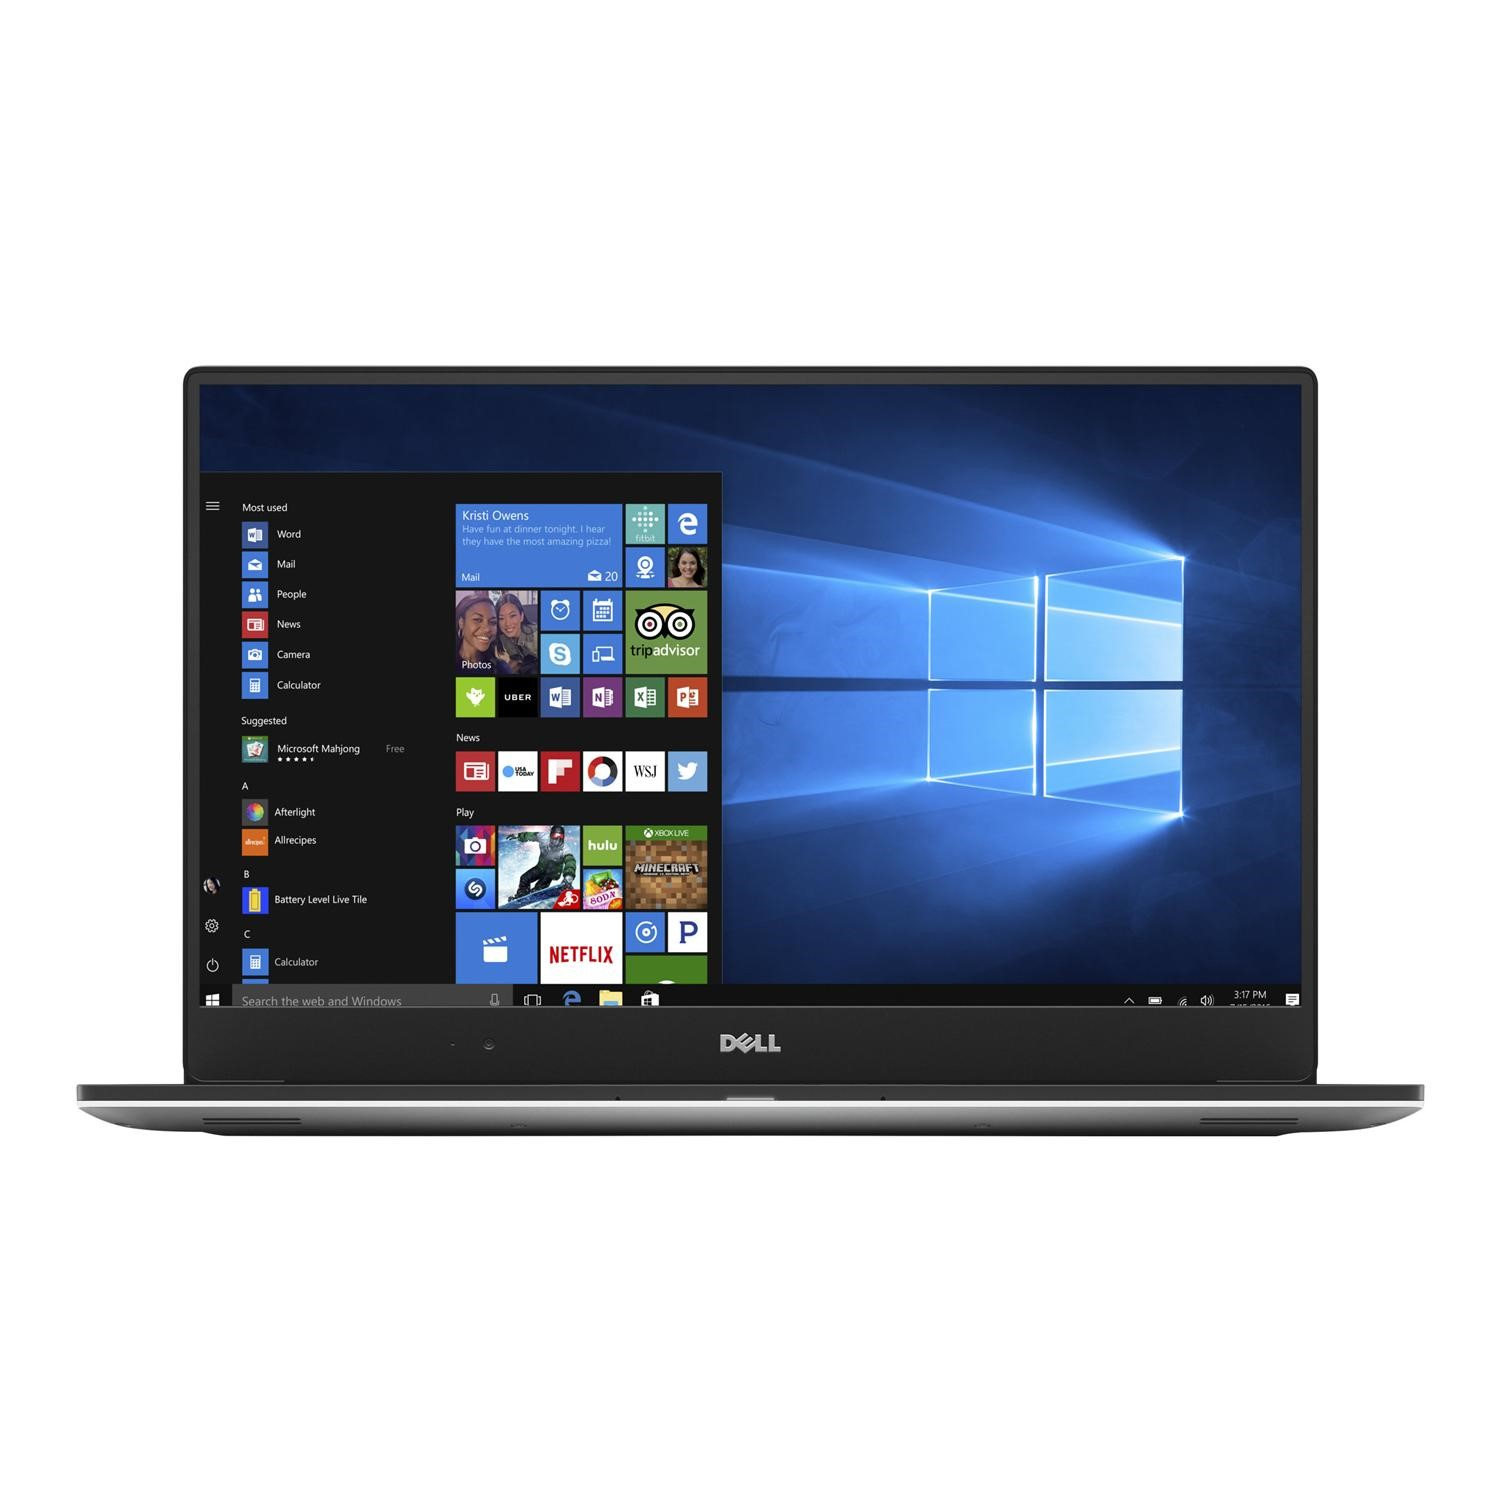 Dell XPS 15 9560 Core i7-7700HQ 16GB 512GB SSD GeForce GTX 1050 15 6 Inch  Windows 10 Professional Touchscreen Gaming Laptop